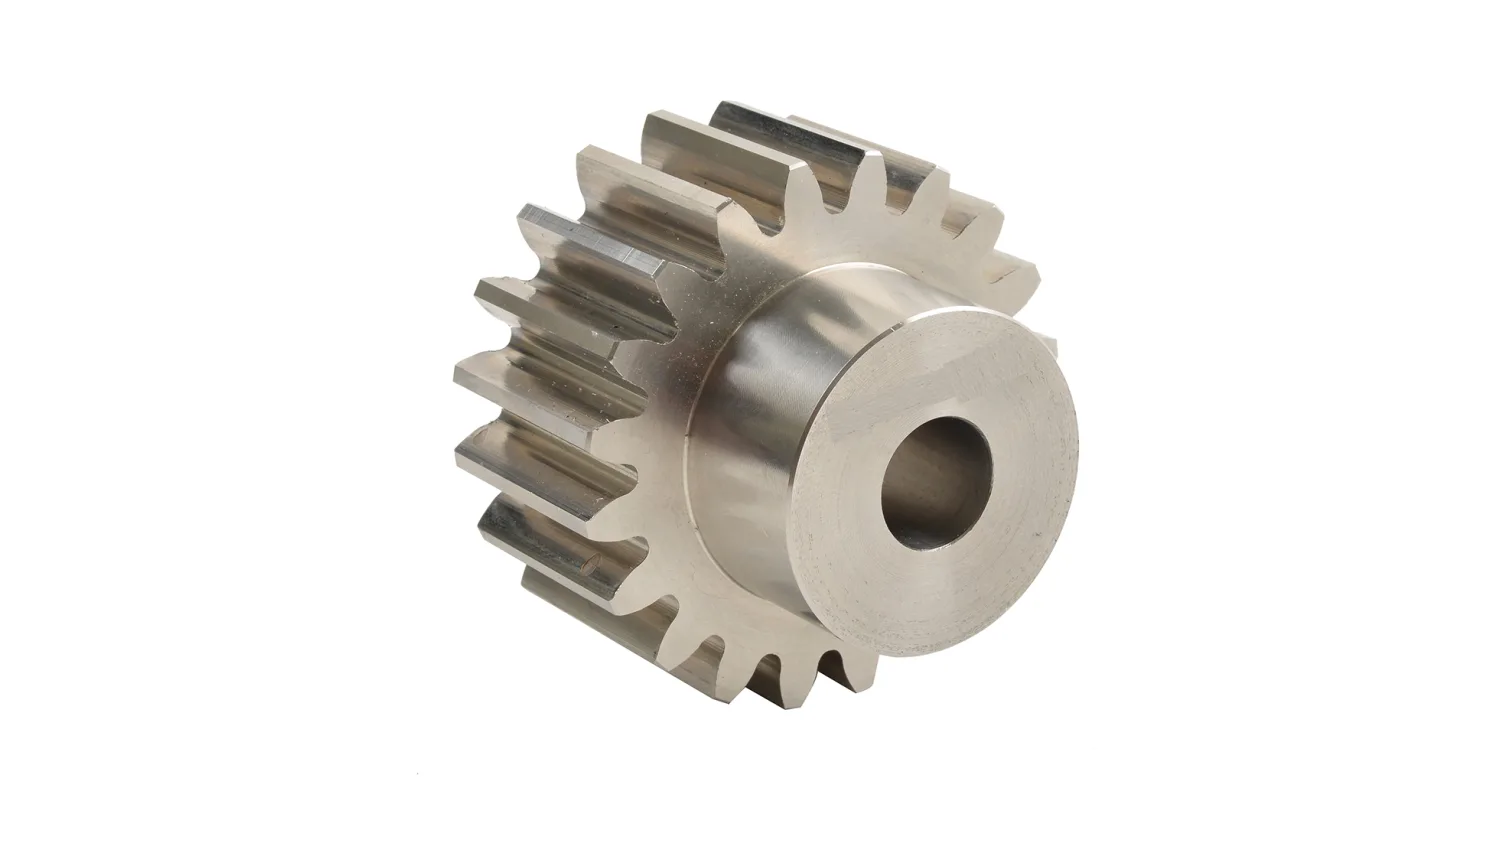 2-5-Mod-x-32-Tooth-Metric-Spur-Gear-in-Steel